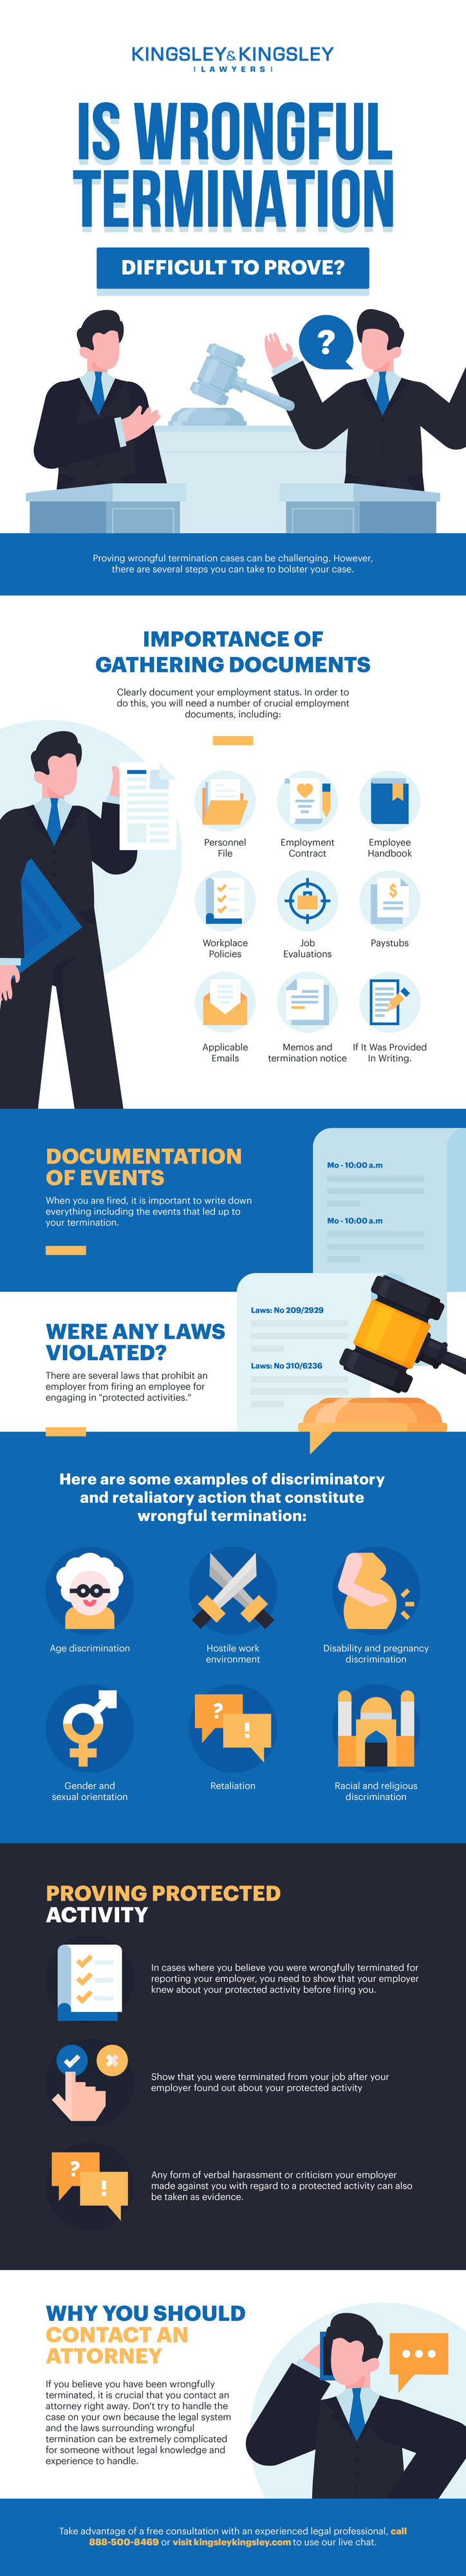 wrongful termination infographic